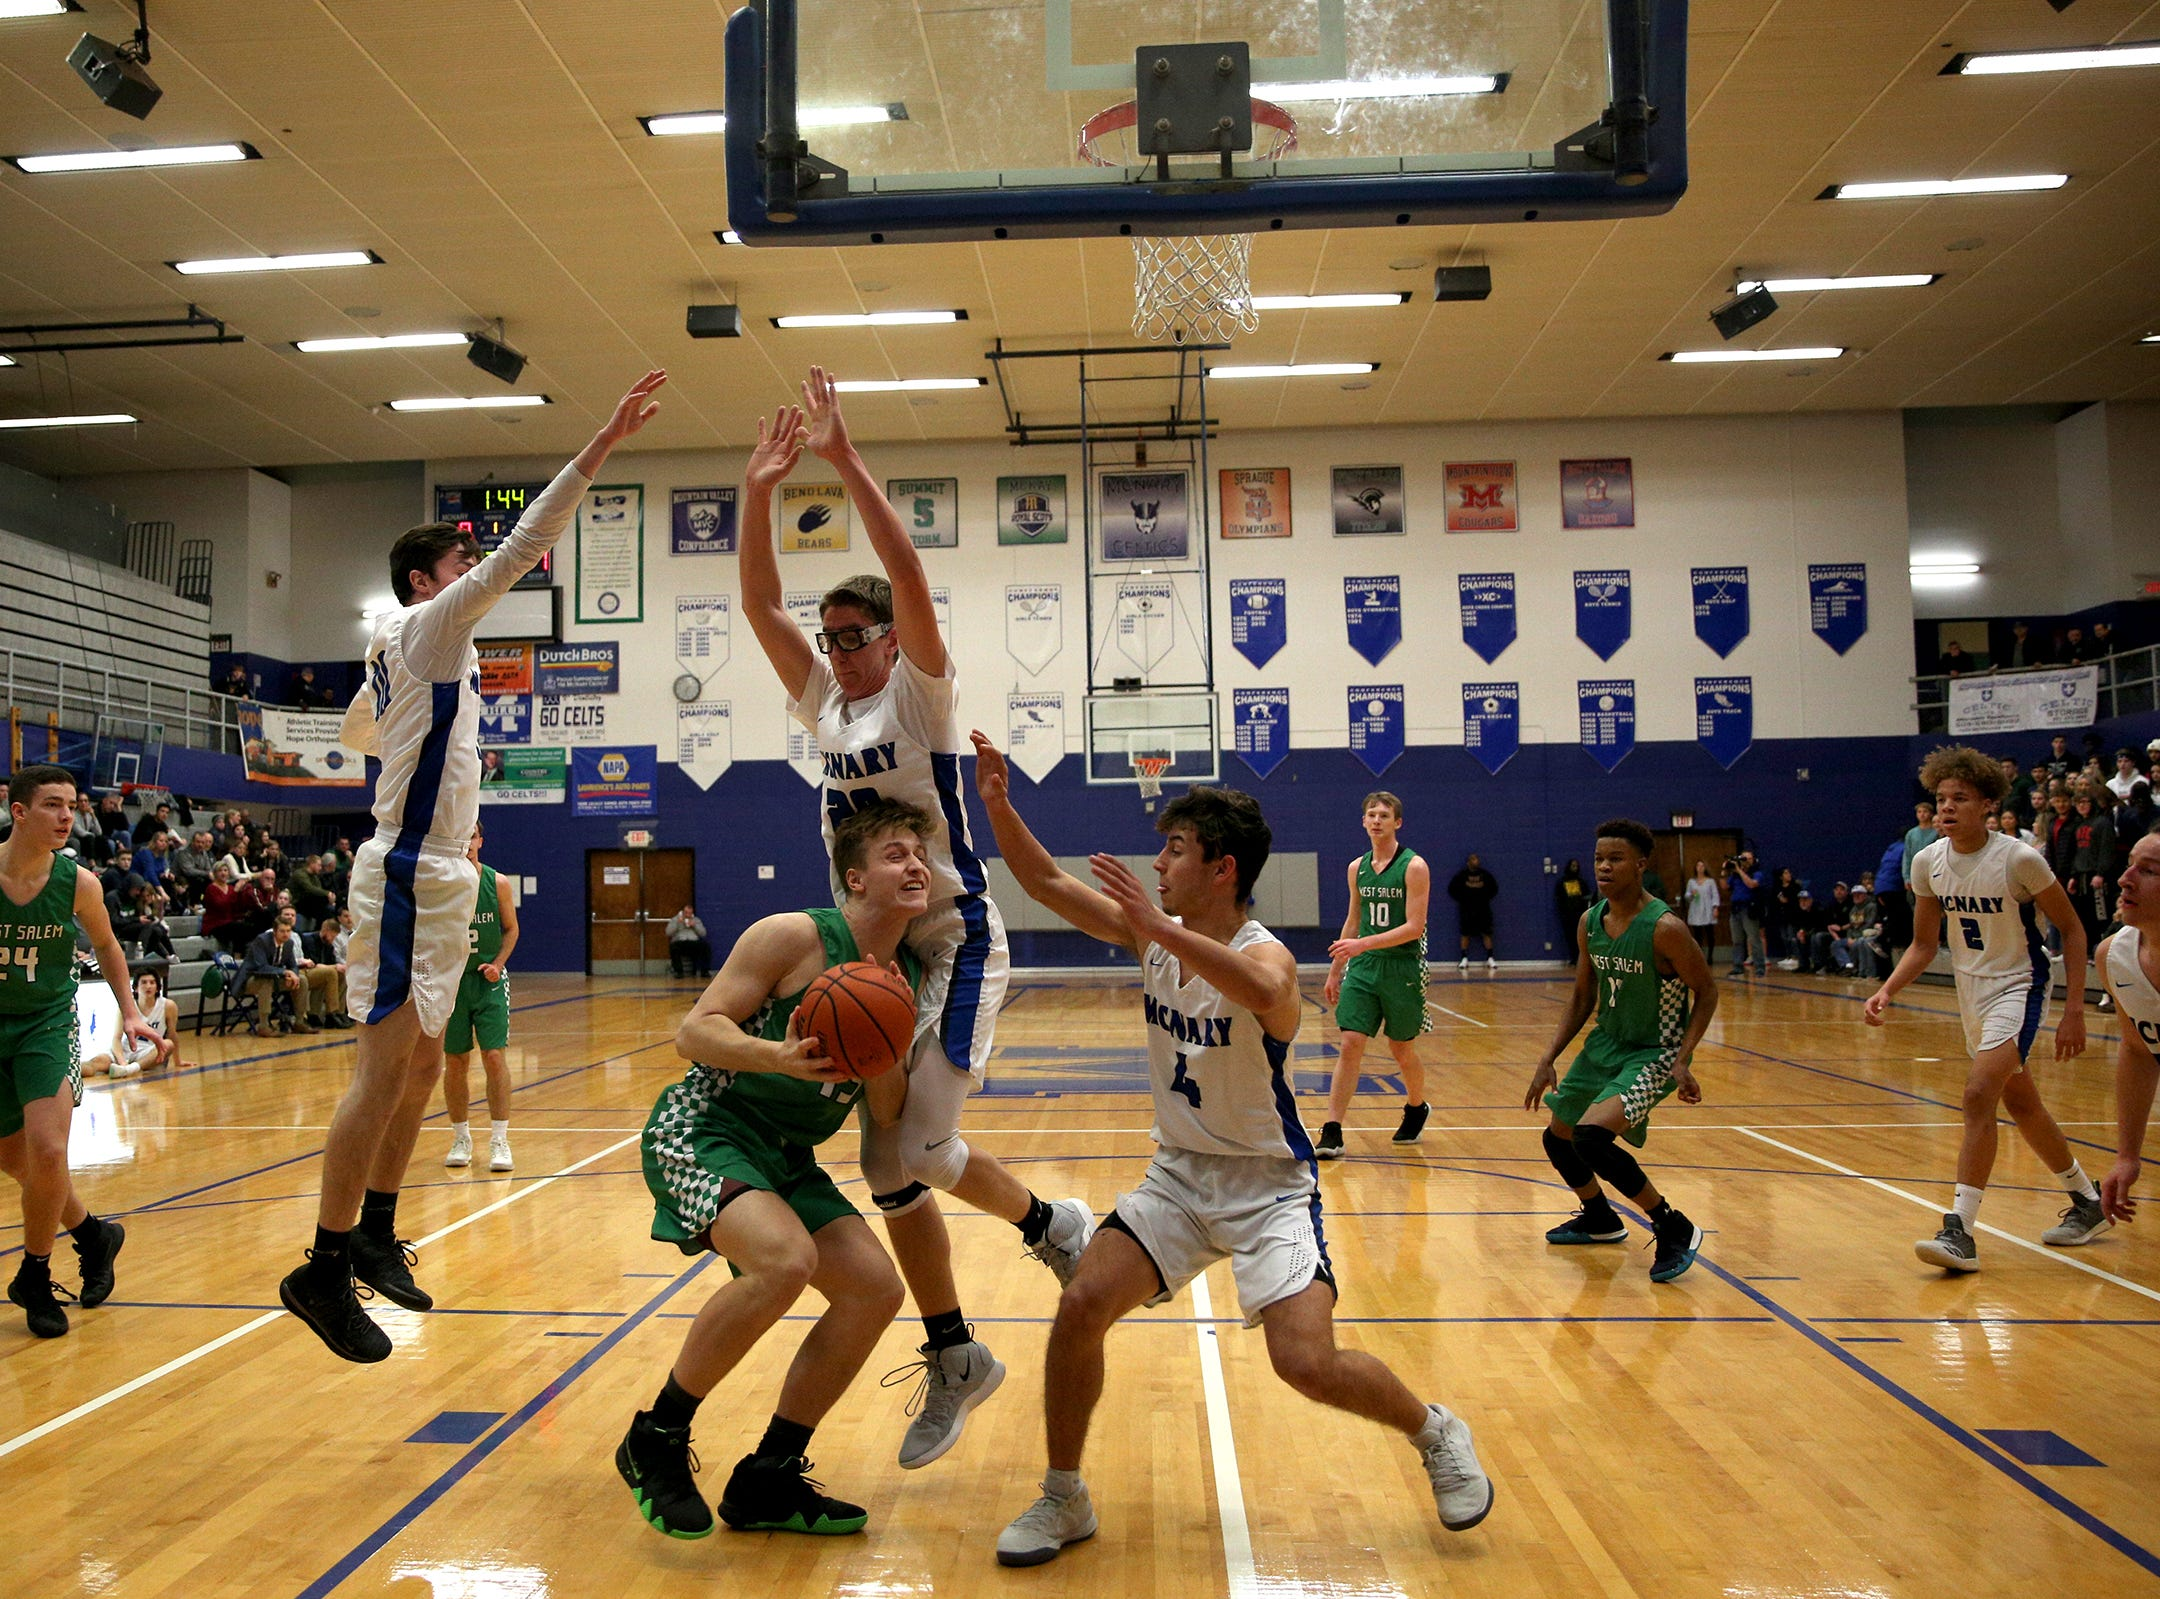 West Salem's Anthony Pugh (13) protects the ball during the McNary boys basketball vs. West Salem game at McNary High School in Keizer on Wednesday, Feb. 6, 2019.